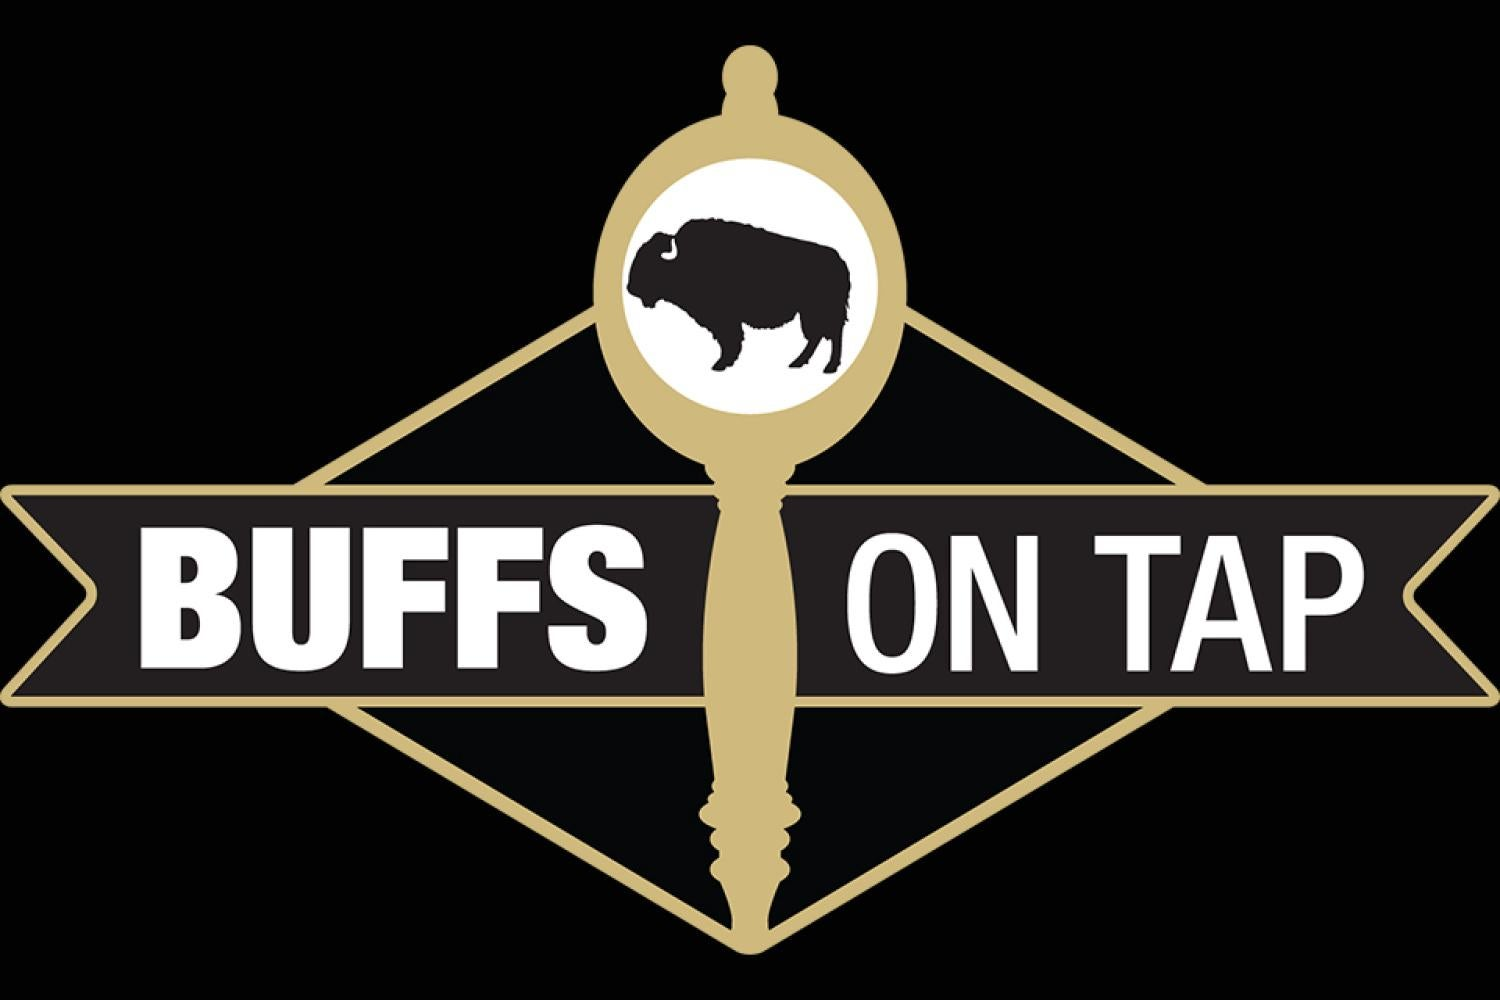 Join us for Buffs on Tap Oct. 14!